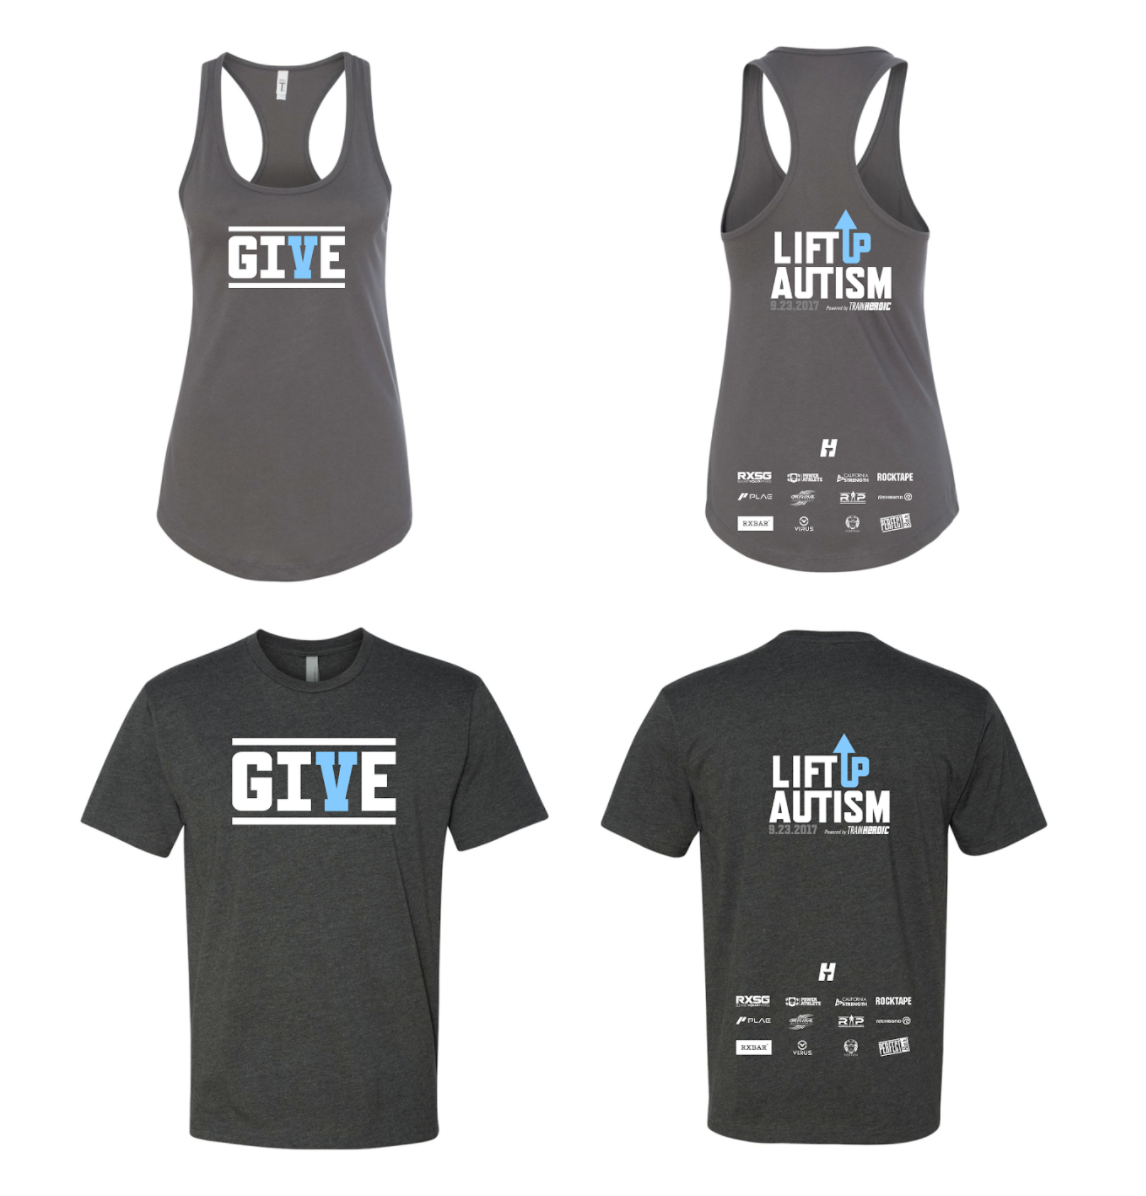 Last day to get your shirt in time for the event